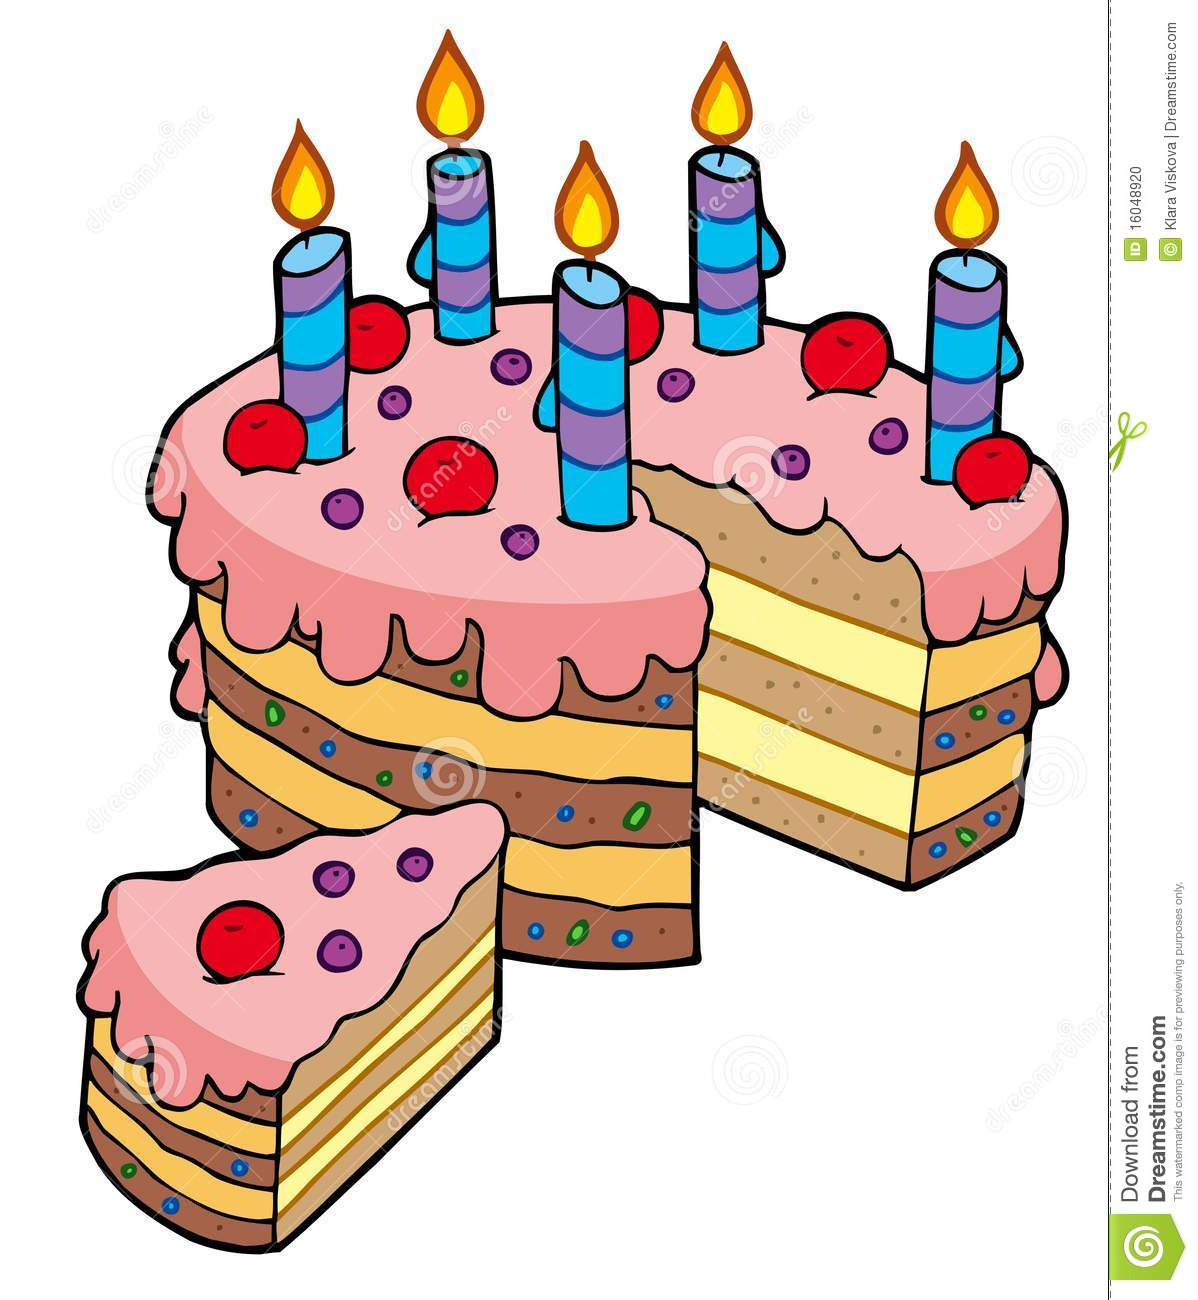 hight resolution of birthday cake slice clip art